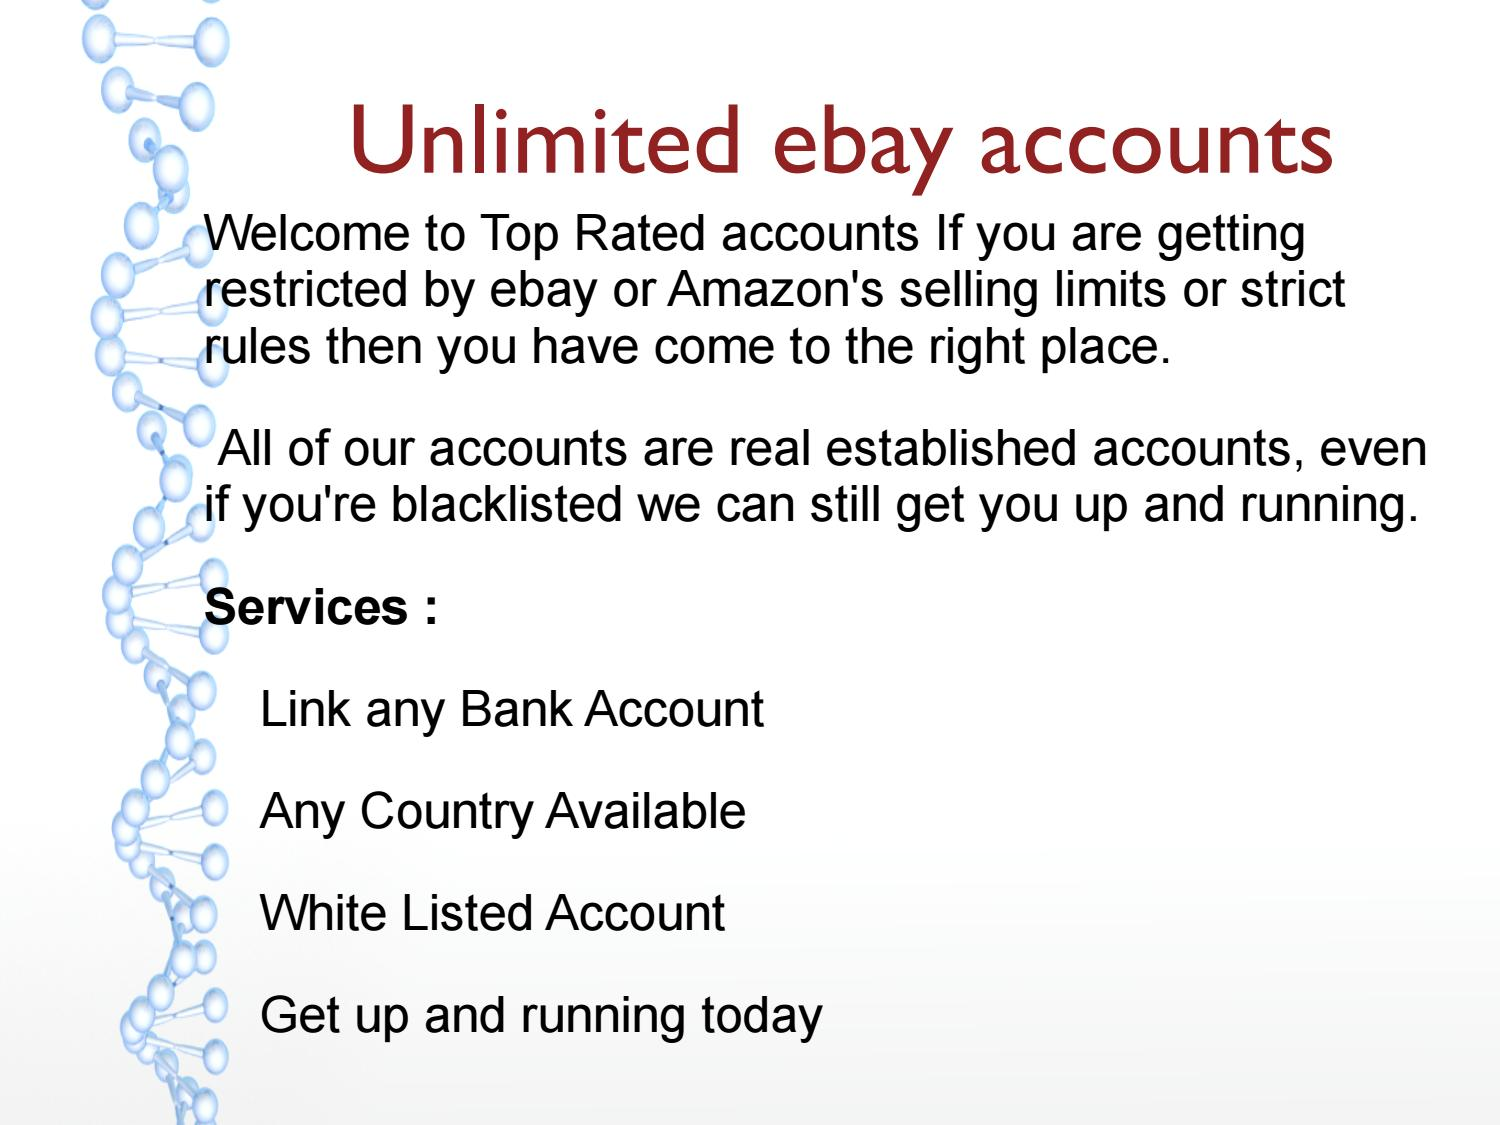 Unlimited Ebay Accounts By Luxury Linens And Things Issuu